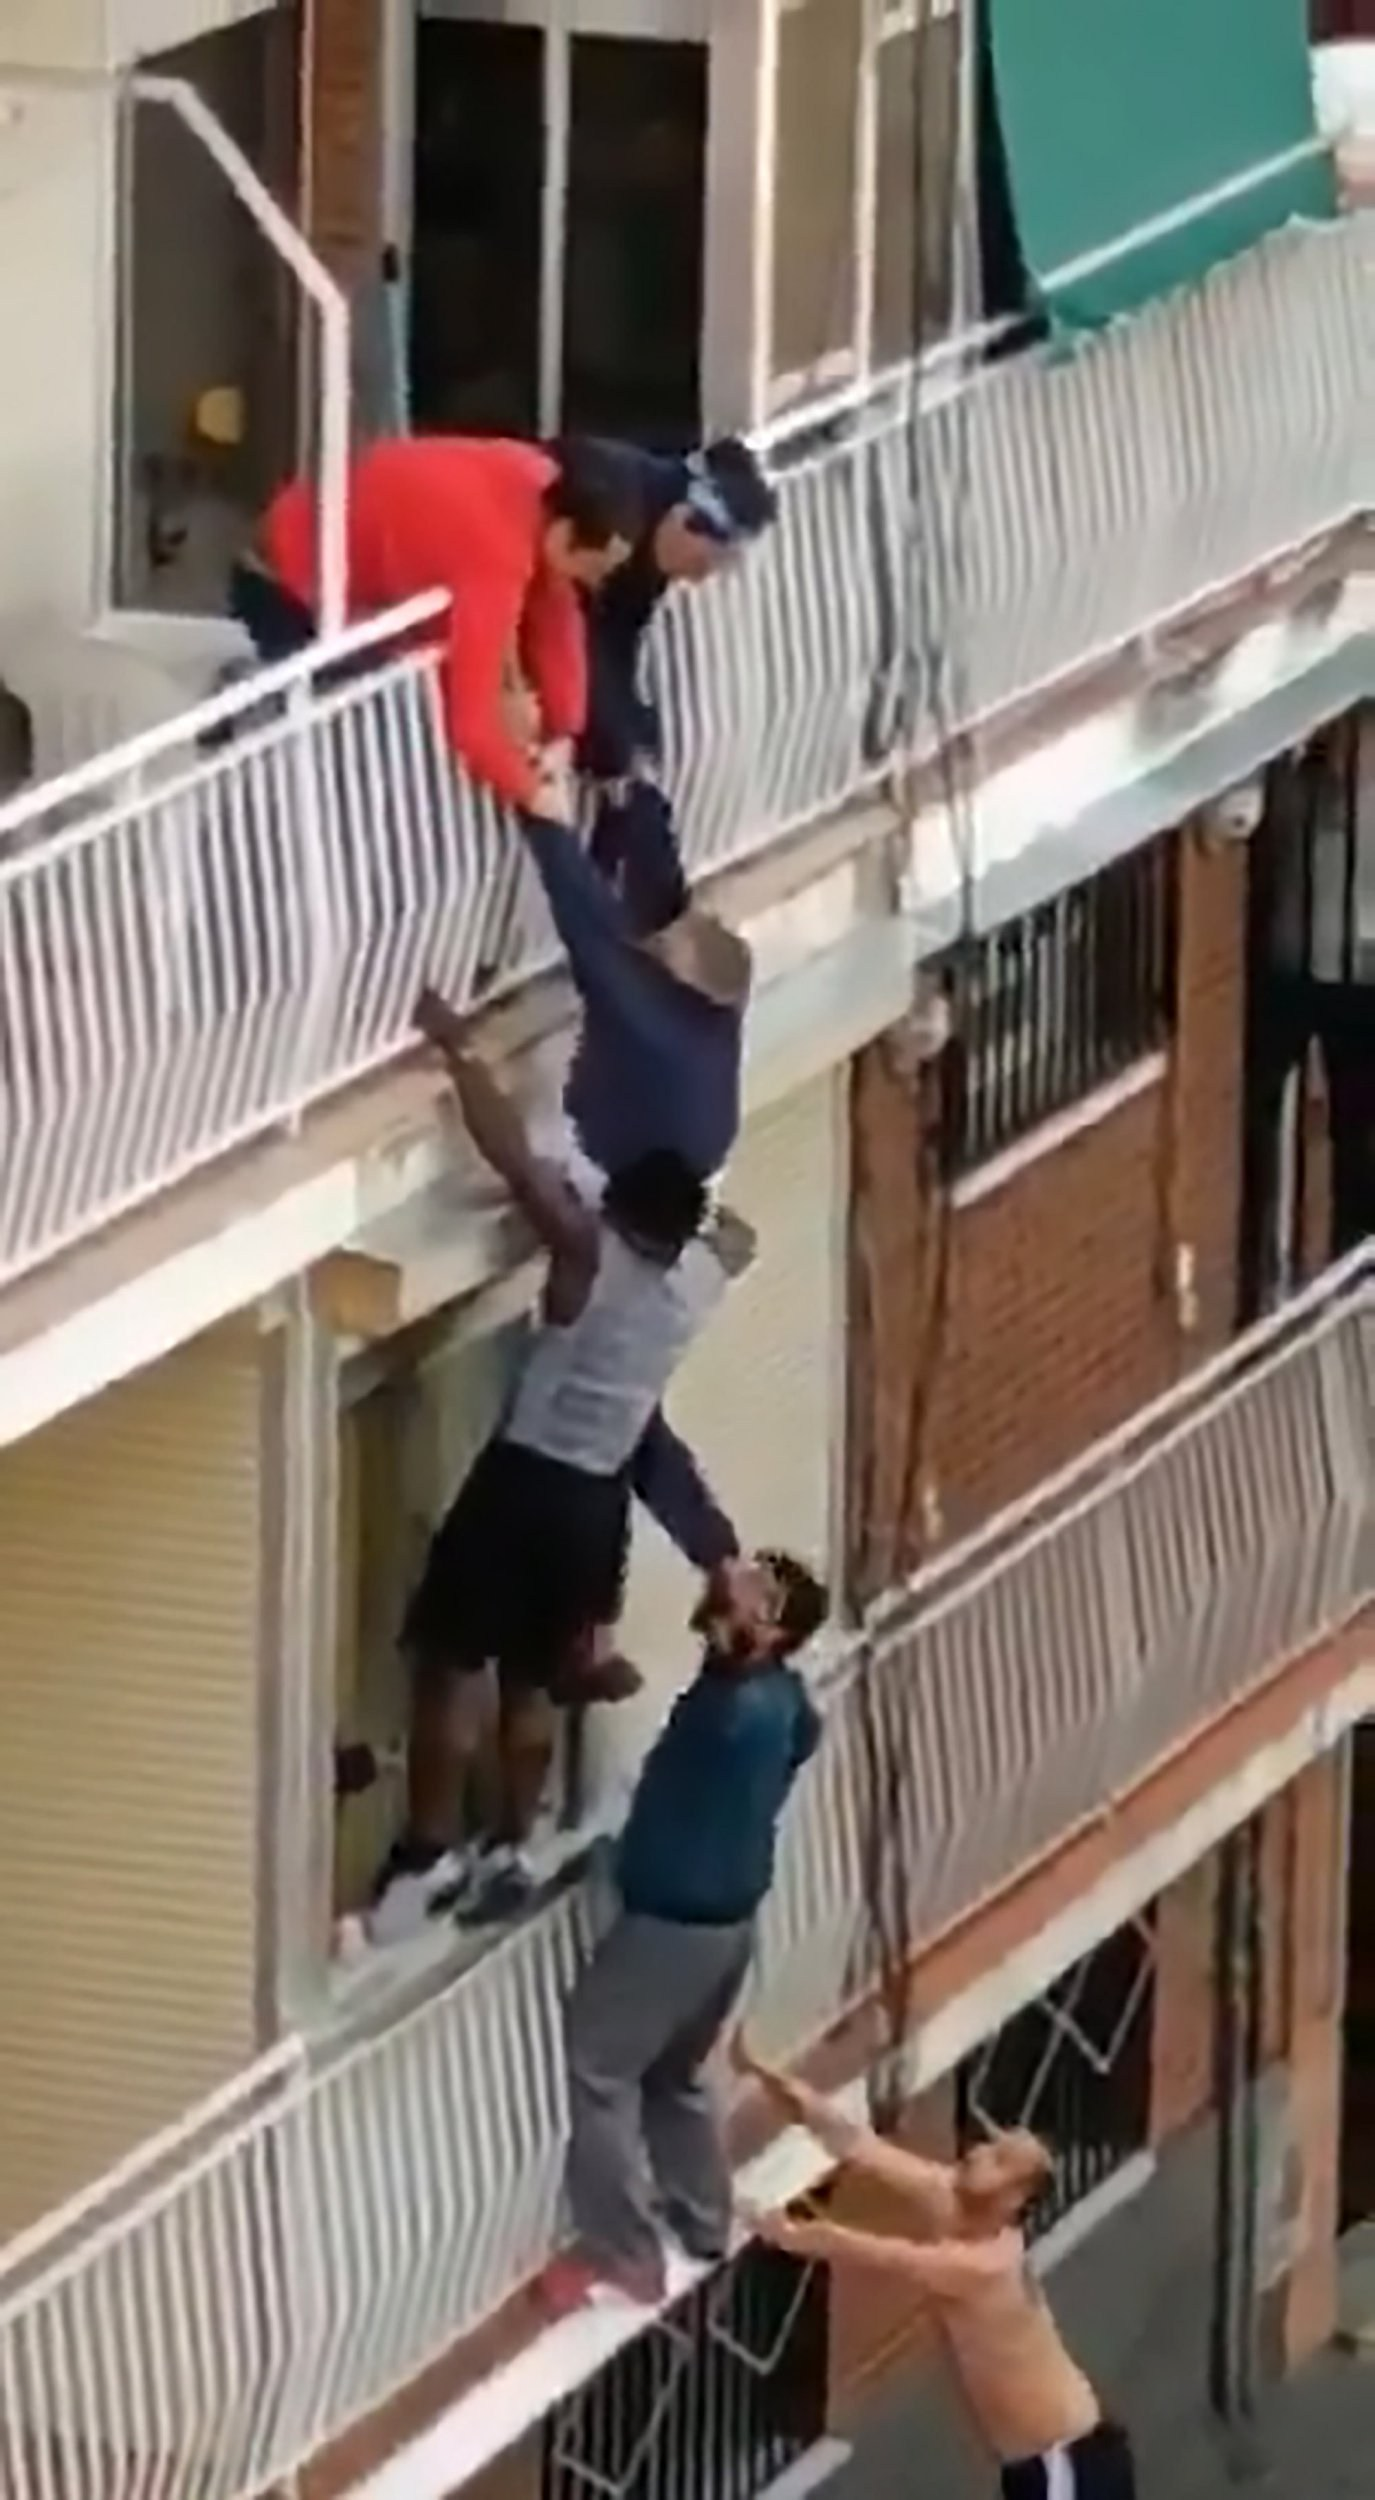 Heroes climb building to save pensioner hanging from balcony